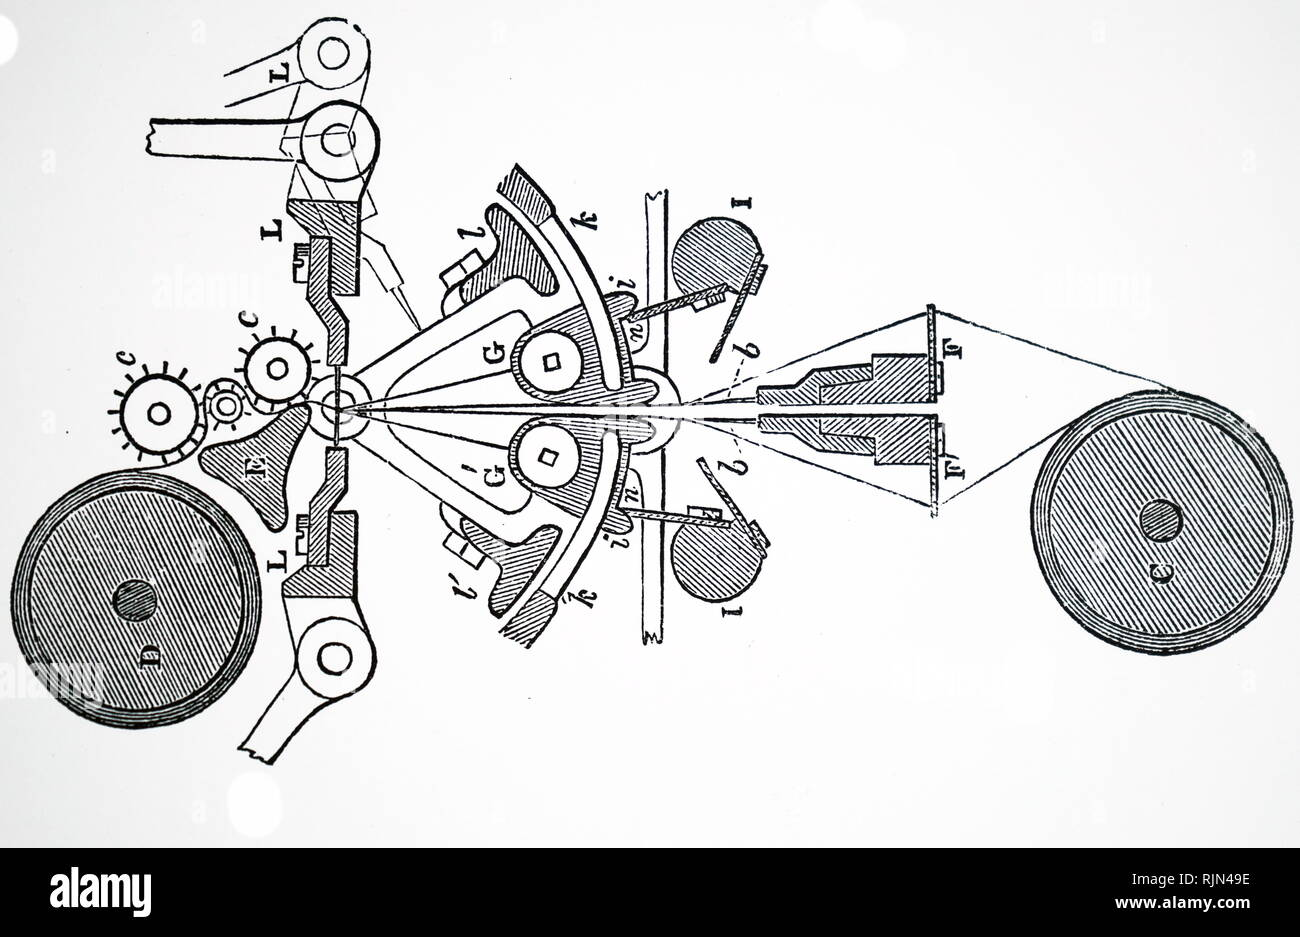 Illustration showing Mechanism of the bobbin net machine 1855 - Stock Image